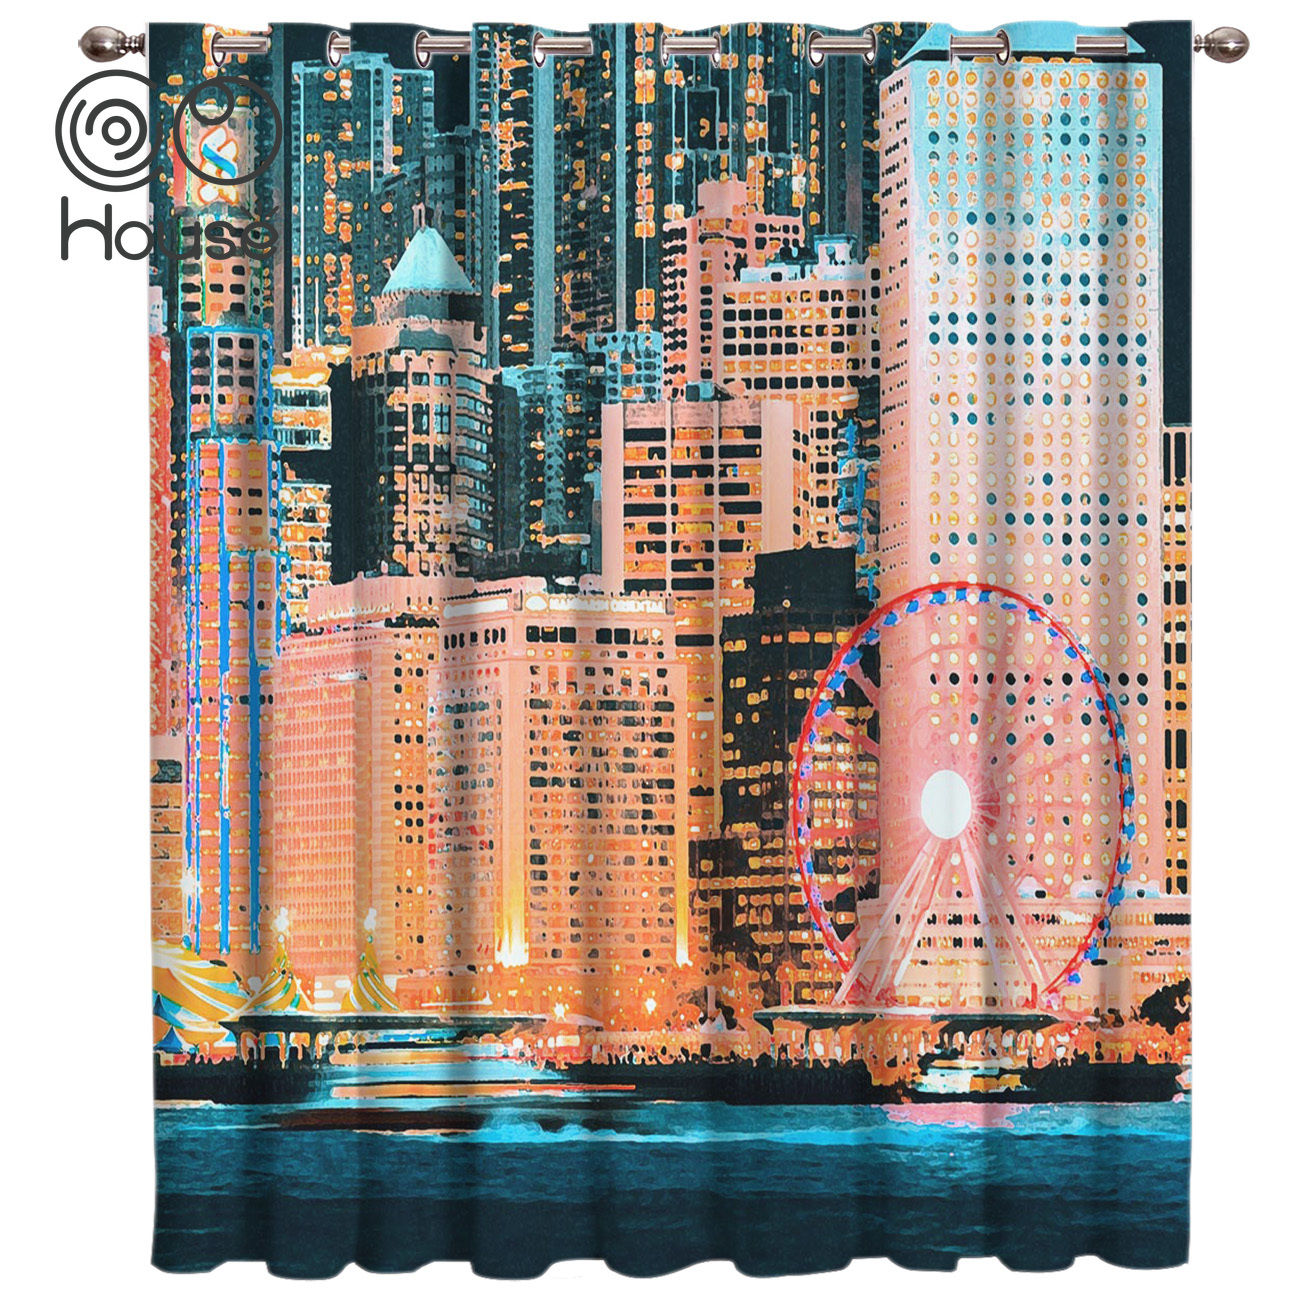 COCOHouse Midern Night View Window Treatments Curtains Valance Room Curtains Large Window Window Curtains Dark Blackout Kitchen